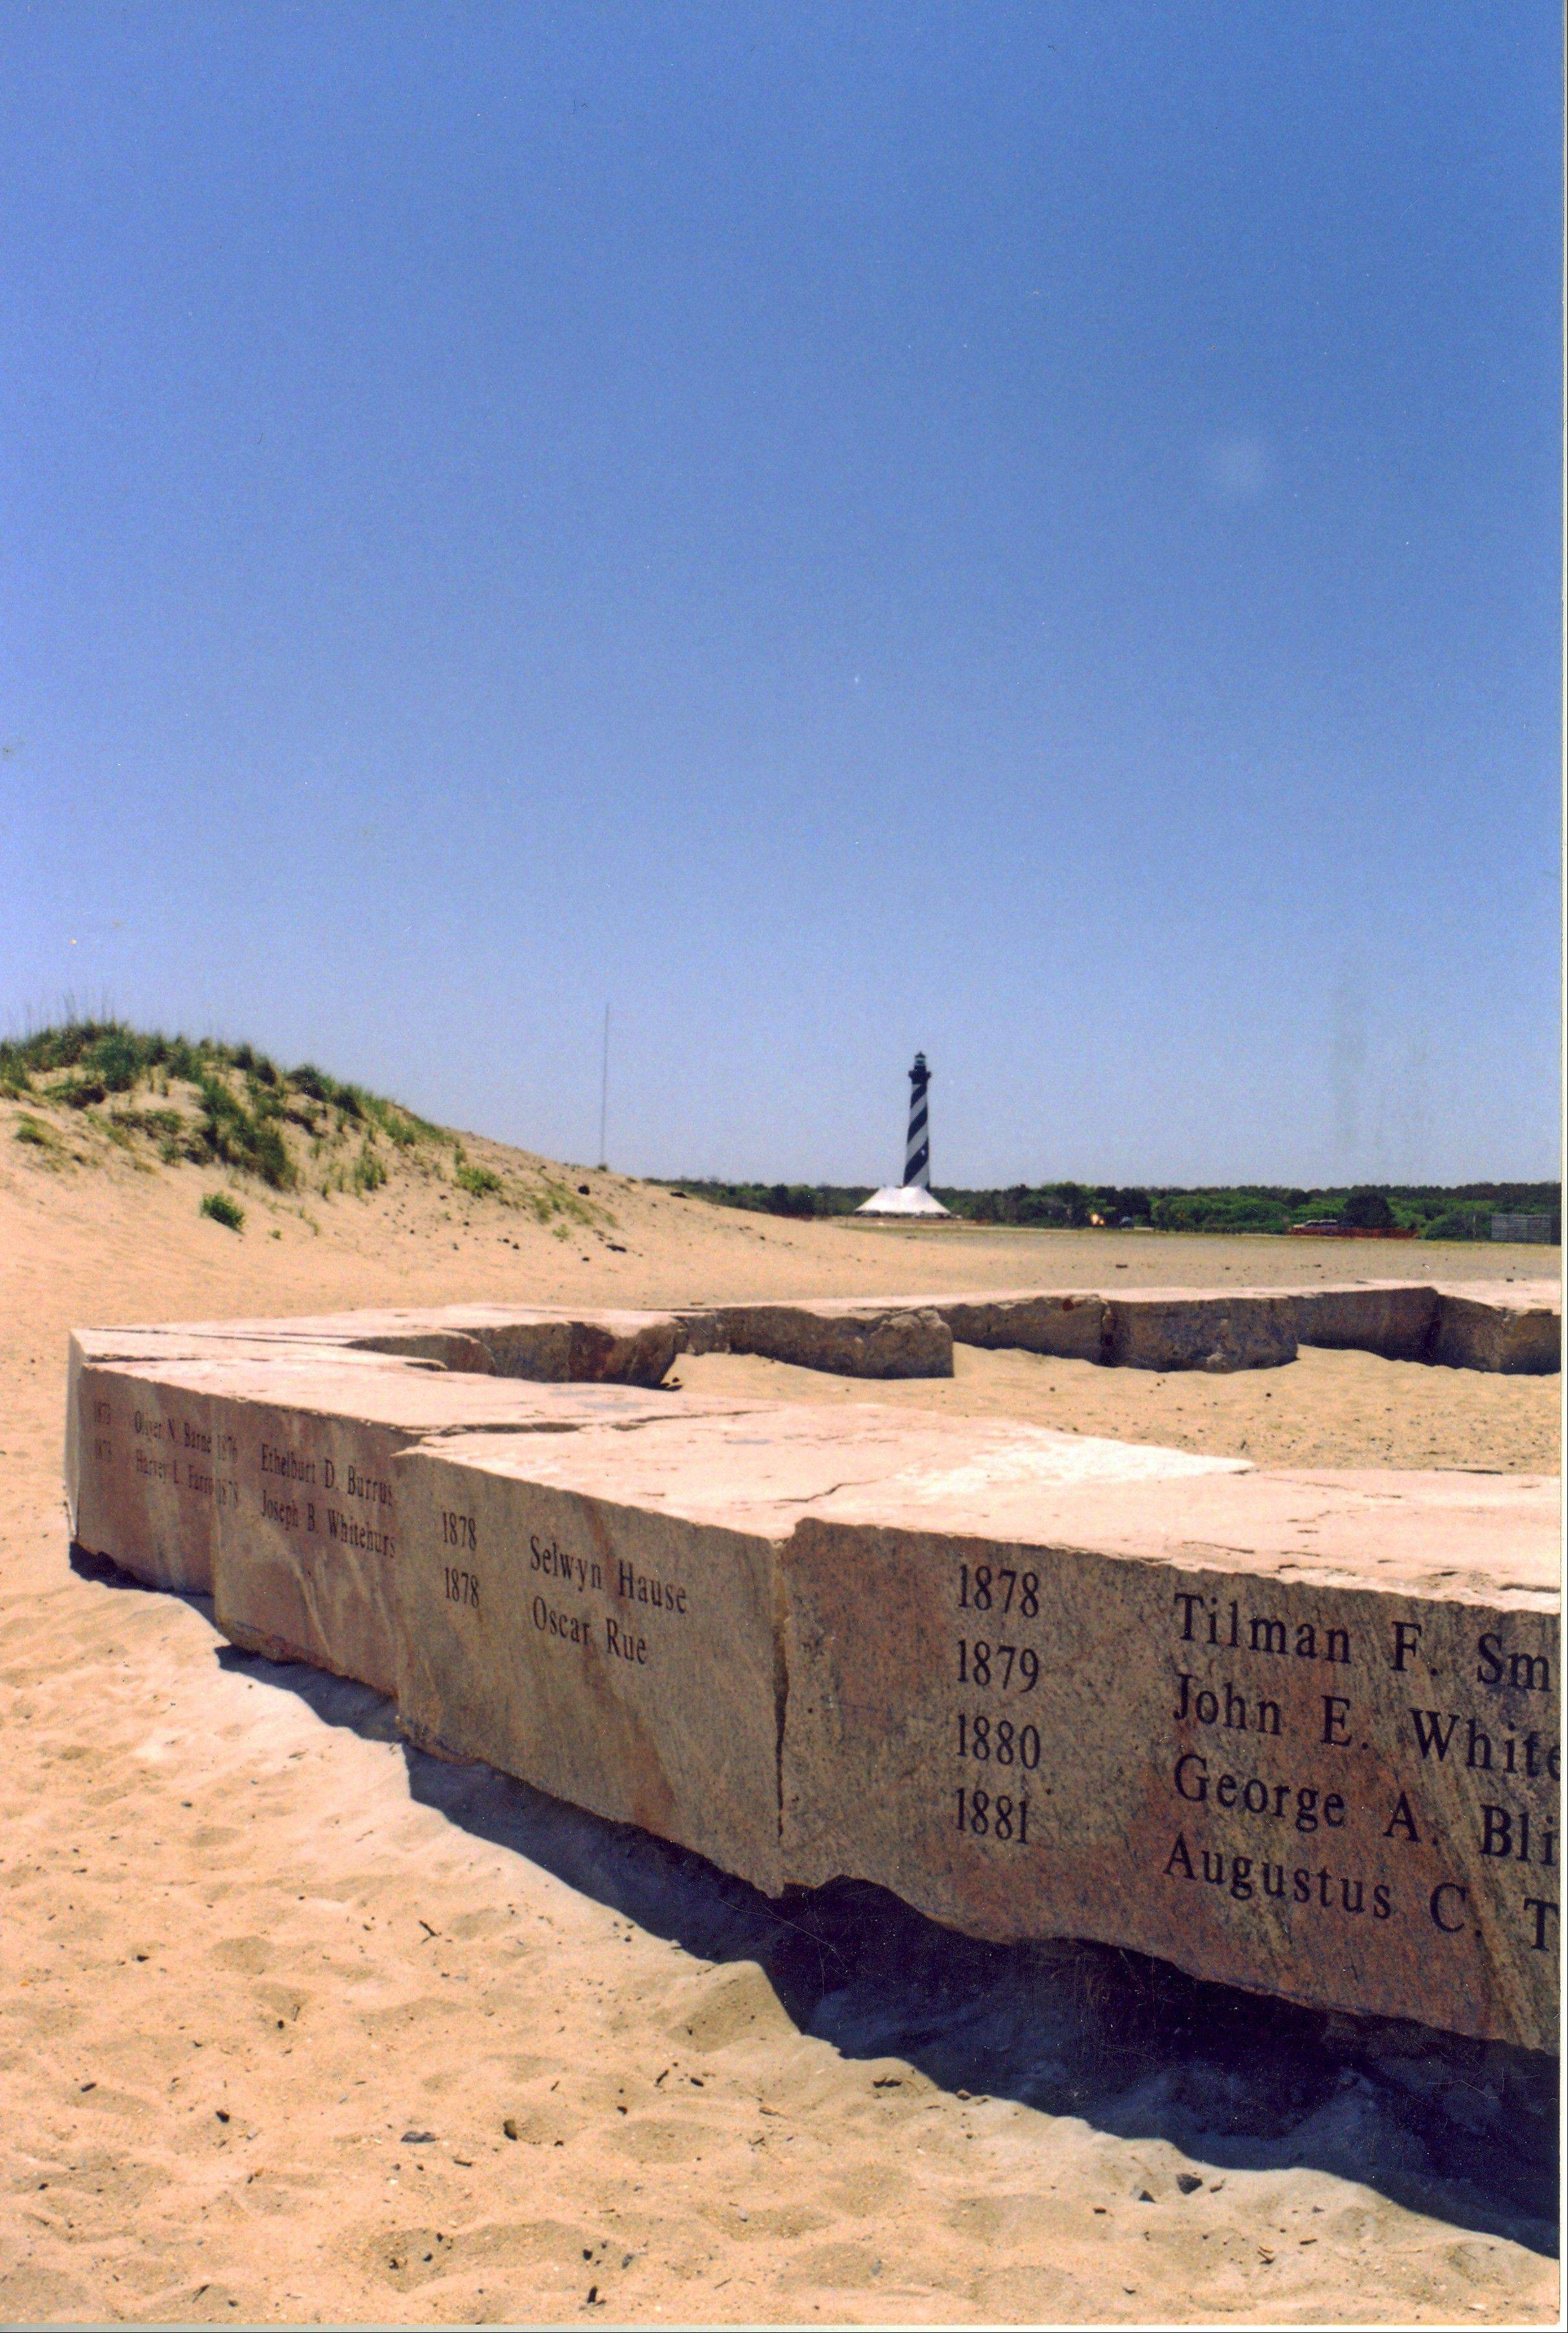 When the Cape Hatteras Lighthouse was moved 15 years ago, the stones were left behind at an erosion-prone spot on the Atlantic. Hatteras Island residents want the stones moved to the lighthouse so that they are publicly visible year-round and better protected from erosion. But the decision rests with the National Park Service, and so far there is no indication that the stones will be moved.